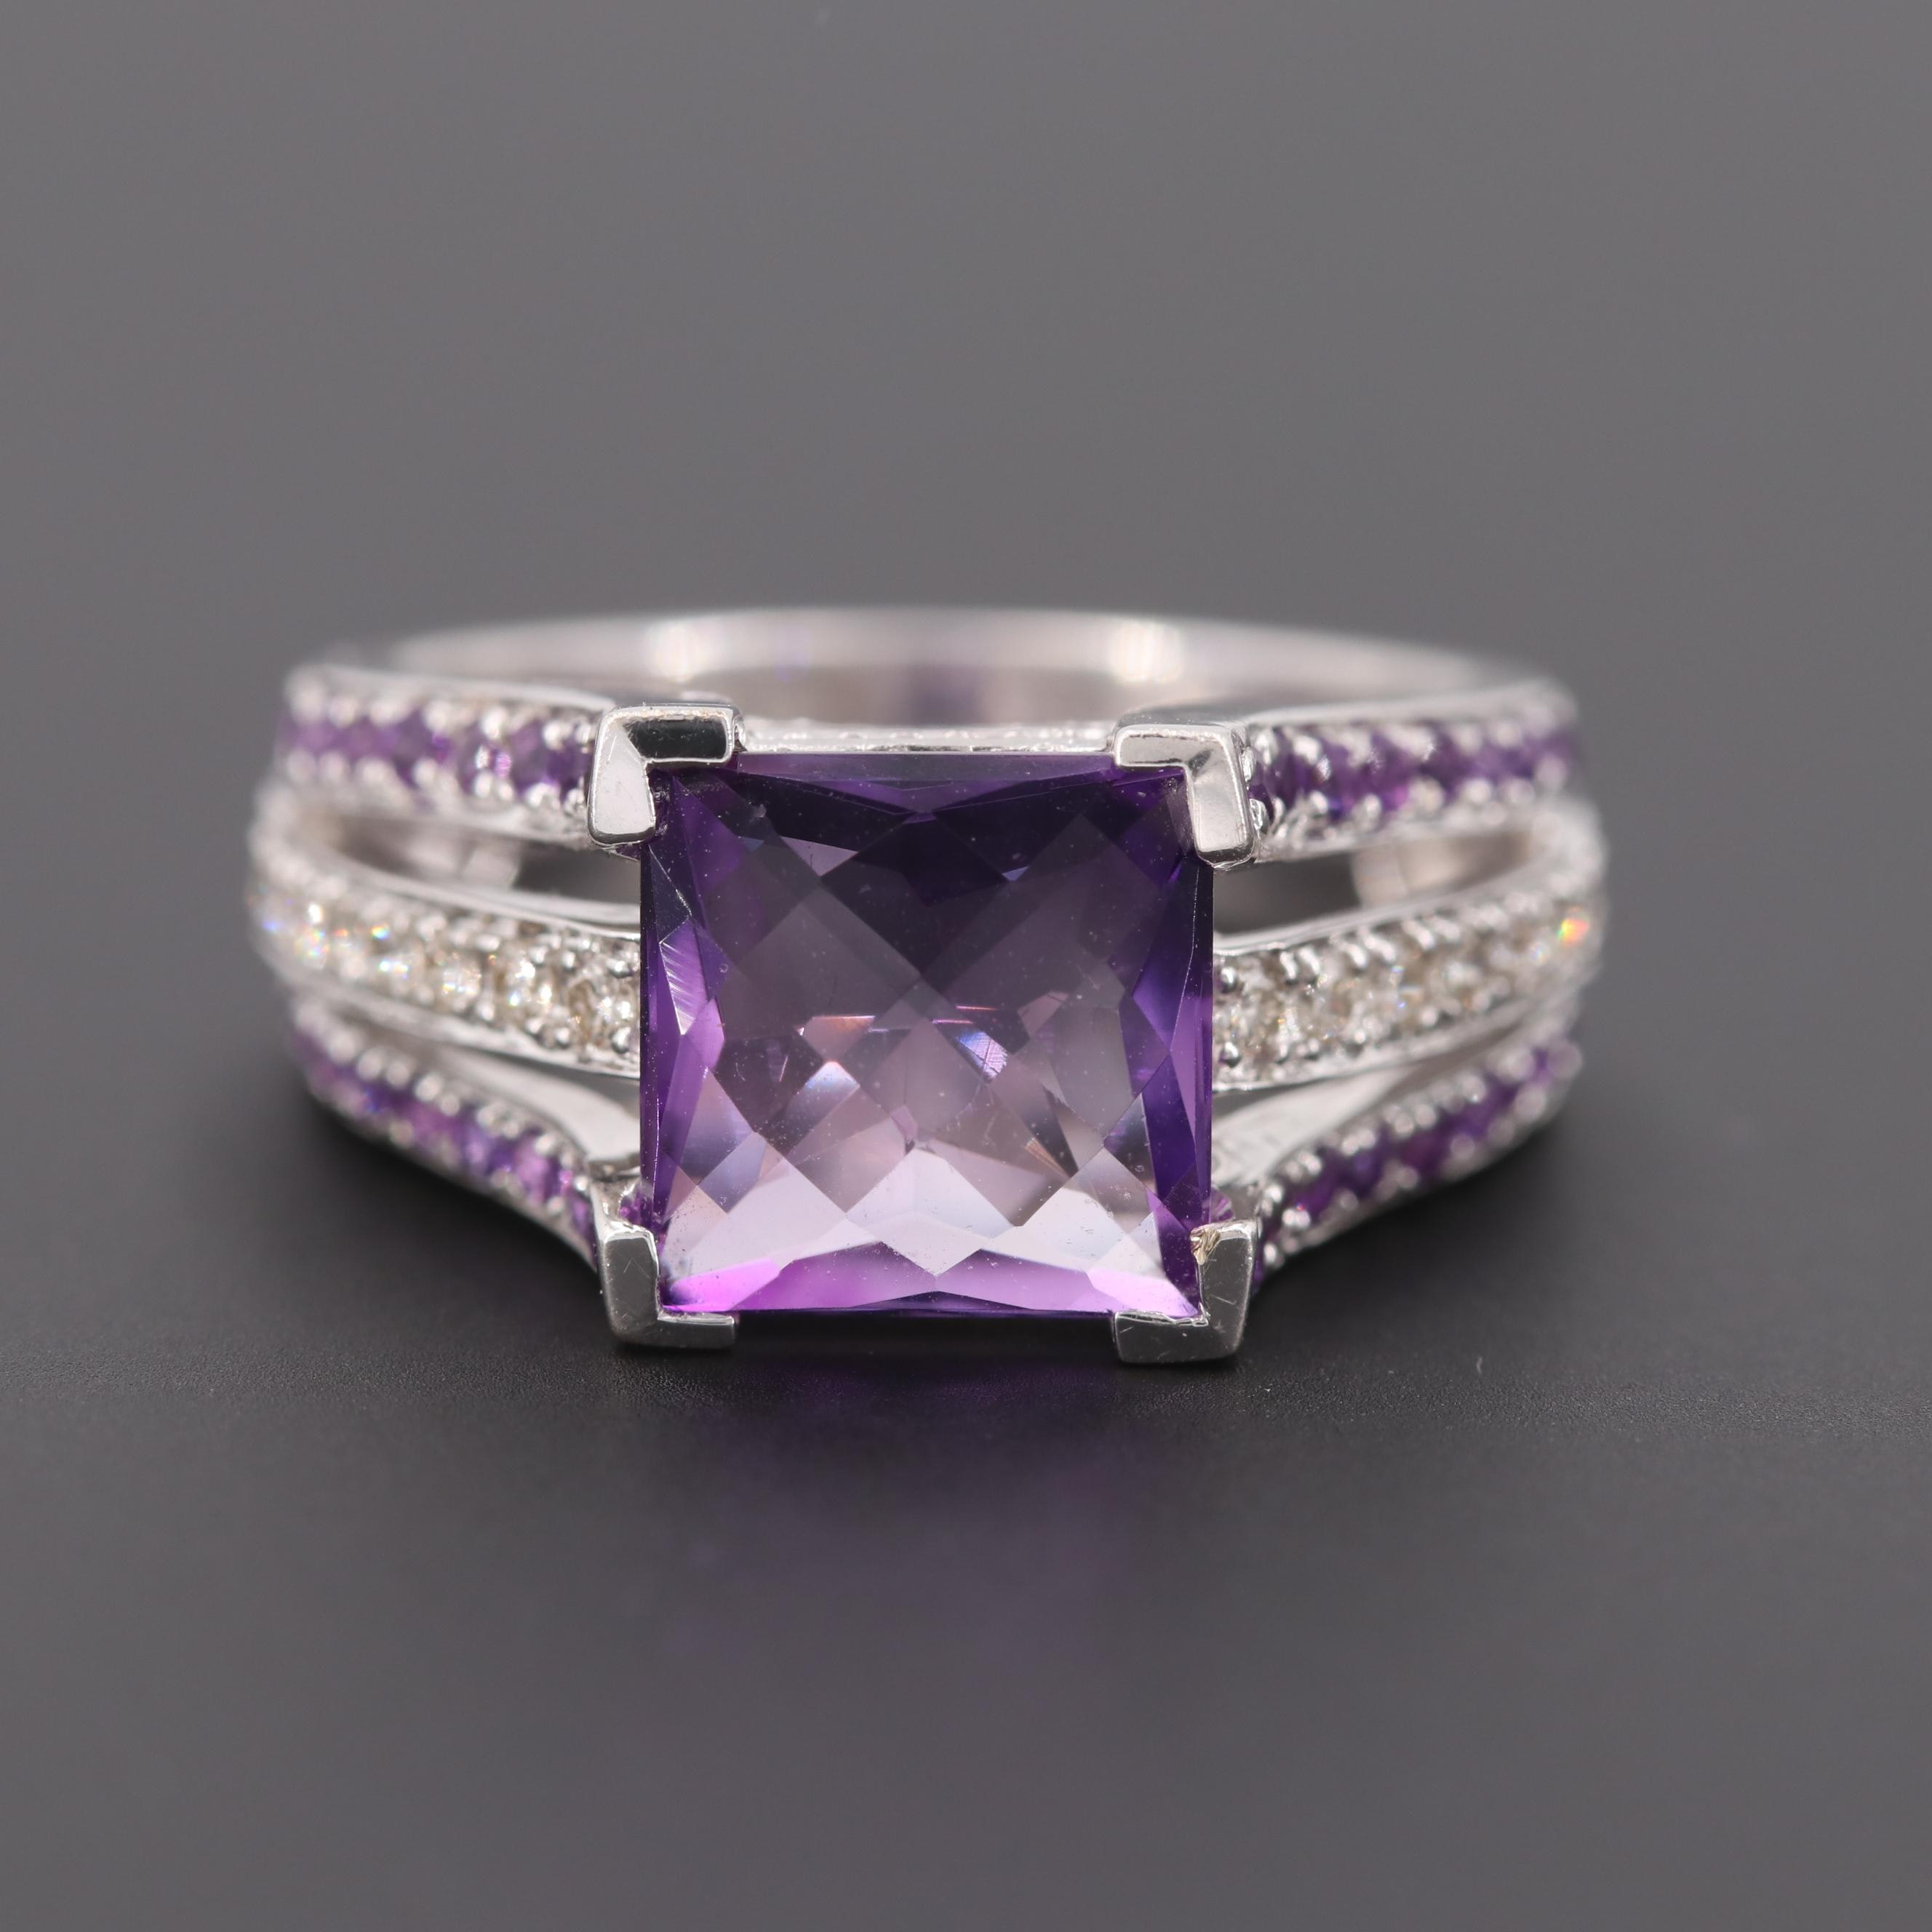 Le Vian 14K White Gold Amethyst and Diamond Ring